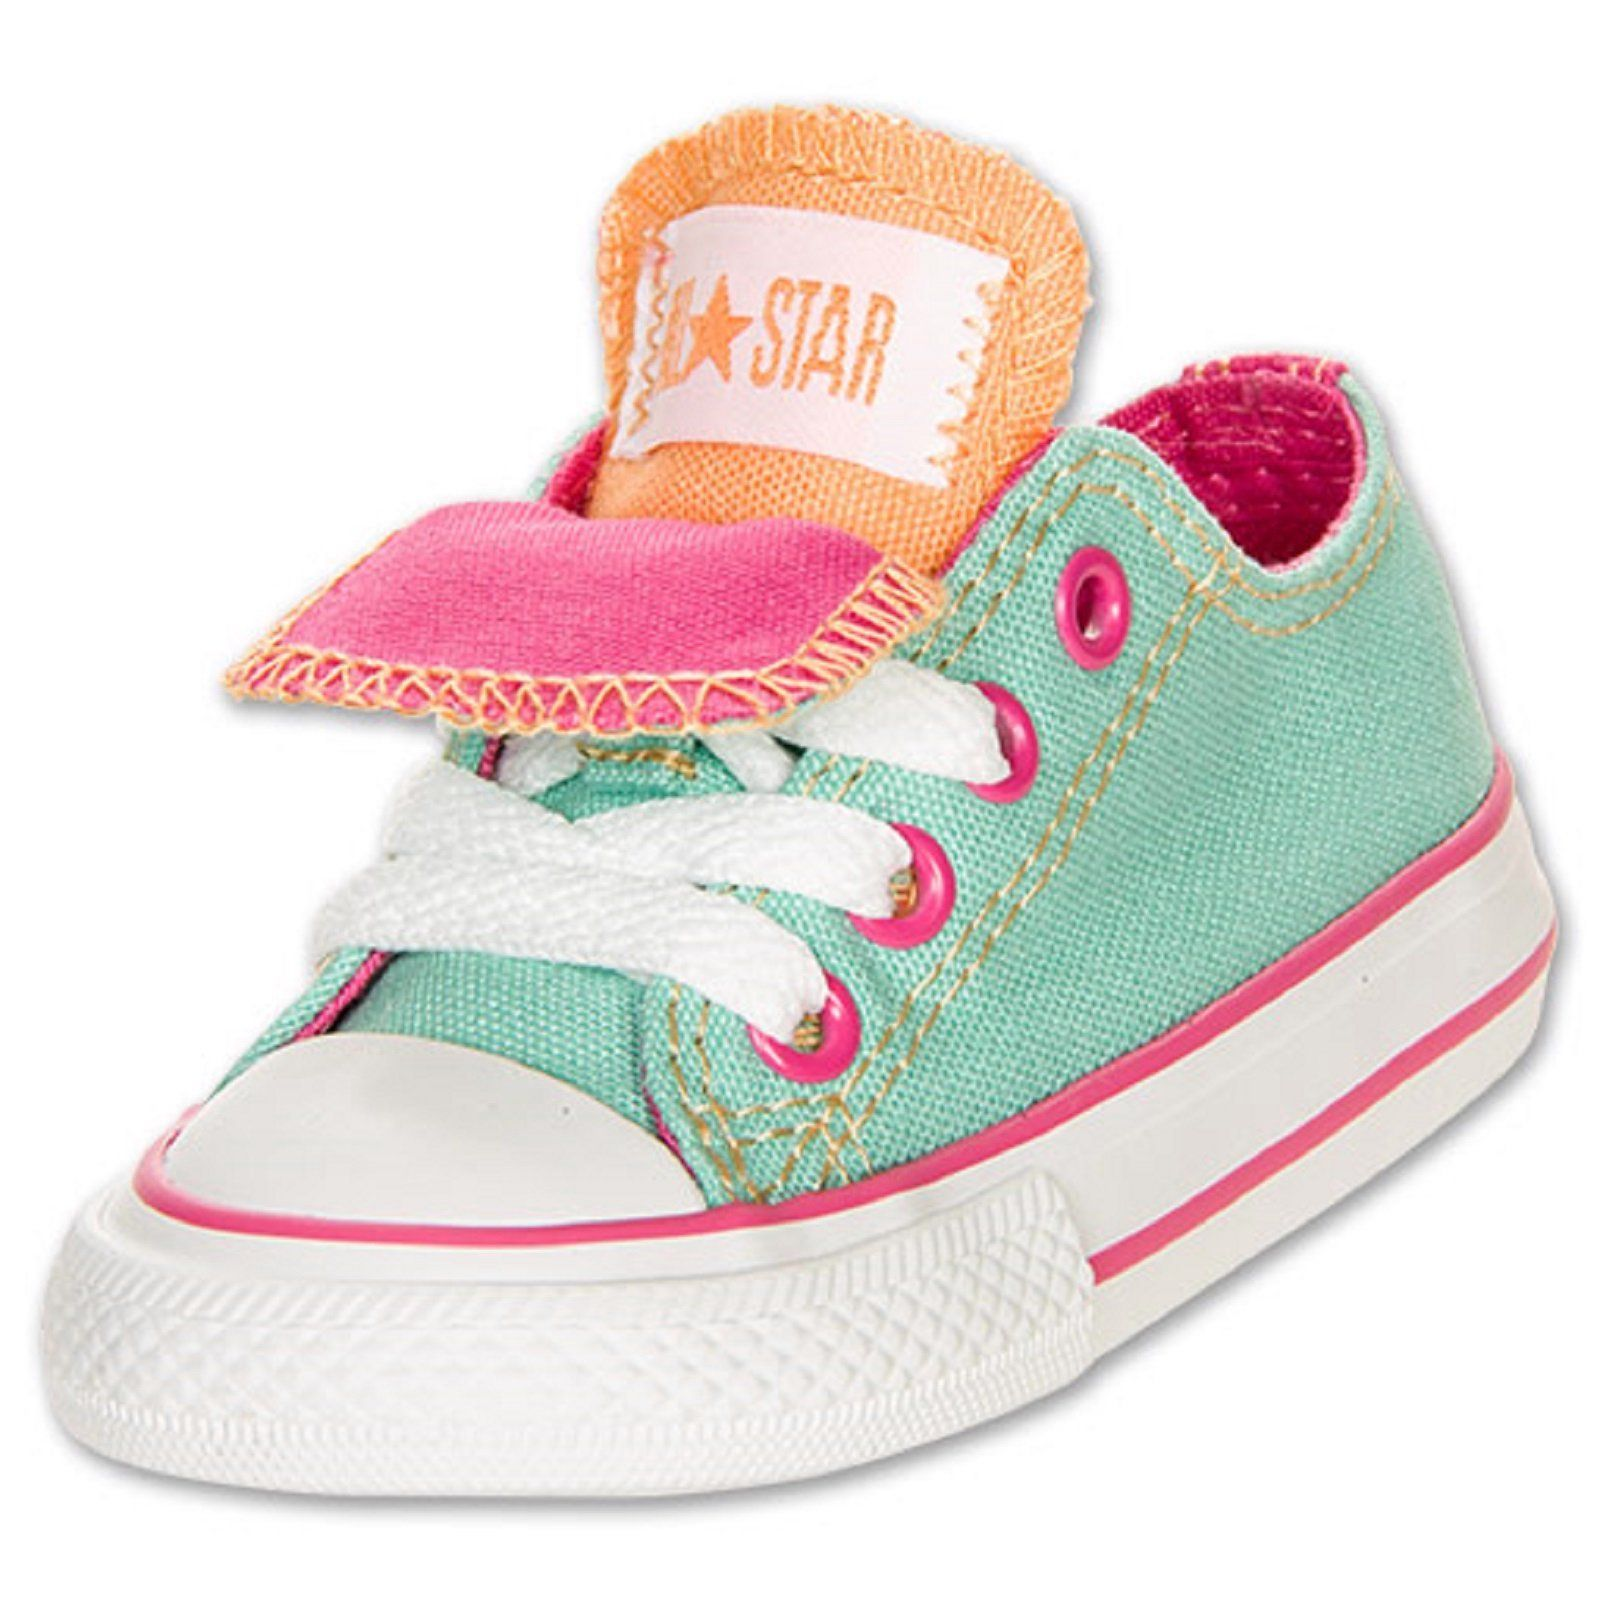 c2a88e94d07206 Baby Girls Shoes Converse Chuck Taylor Double Tongue Ox Toddler Sizes Aqua  Pink